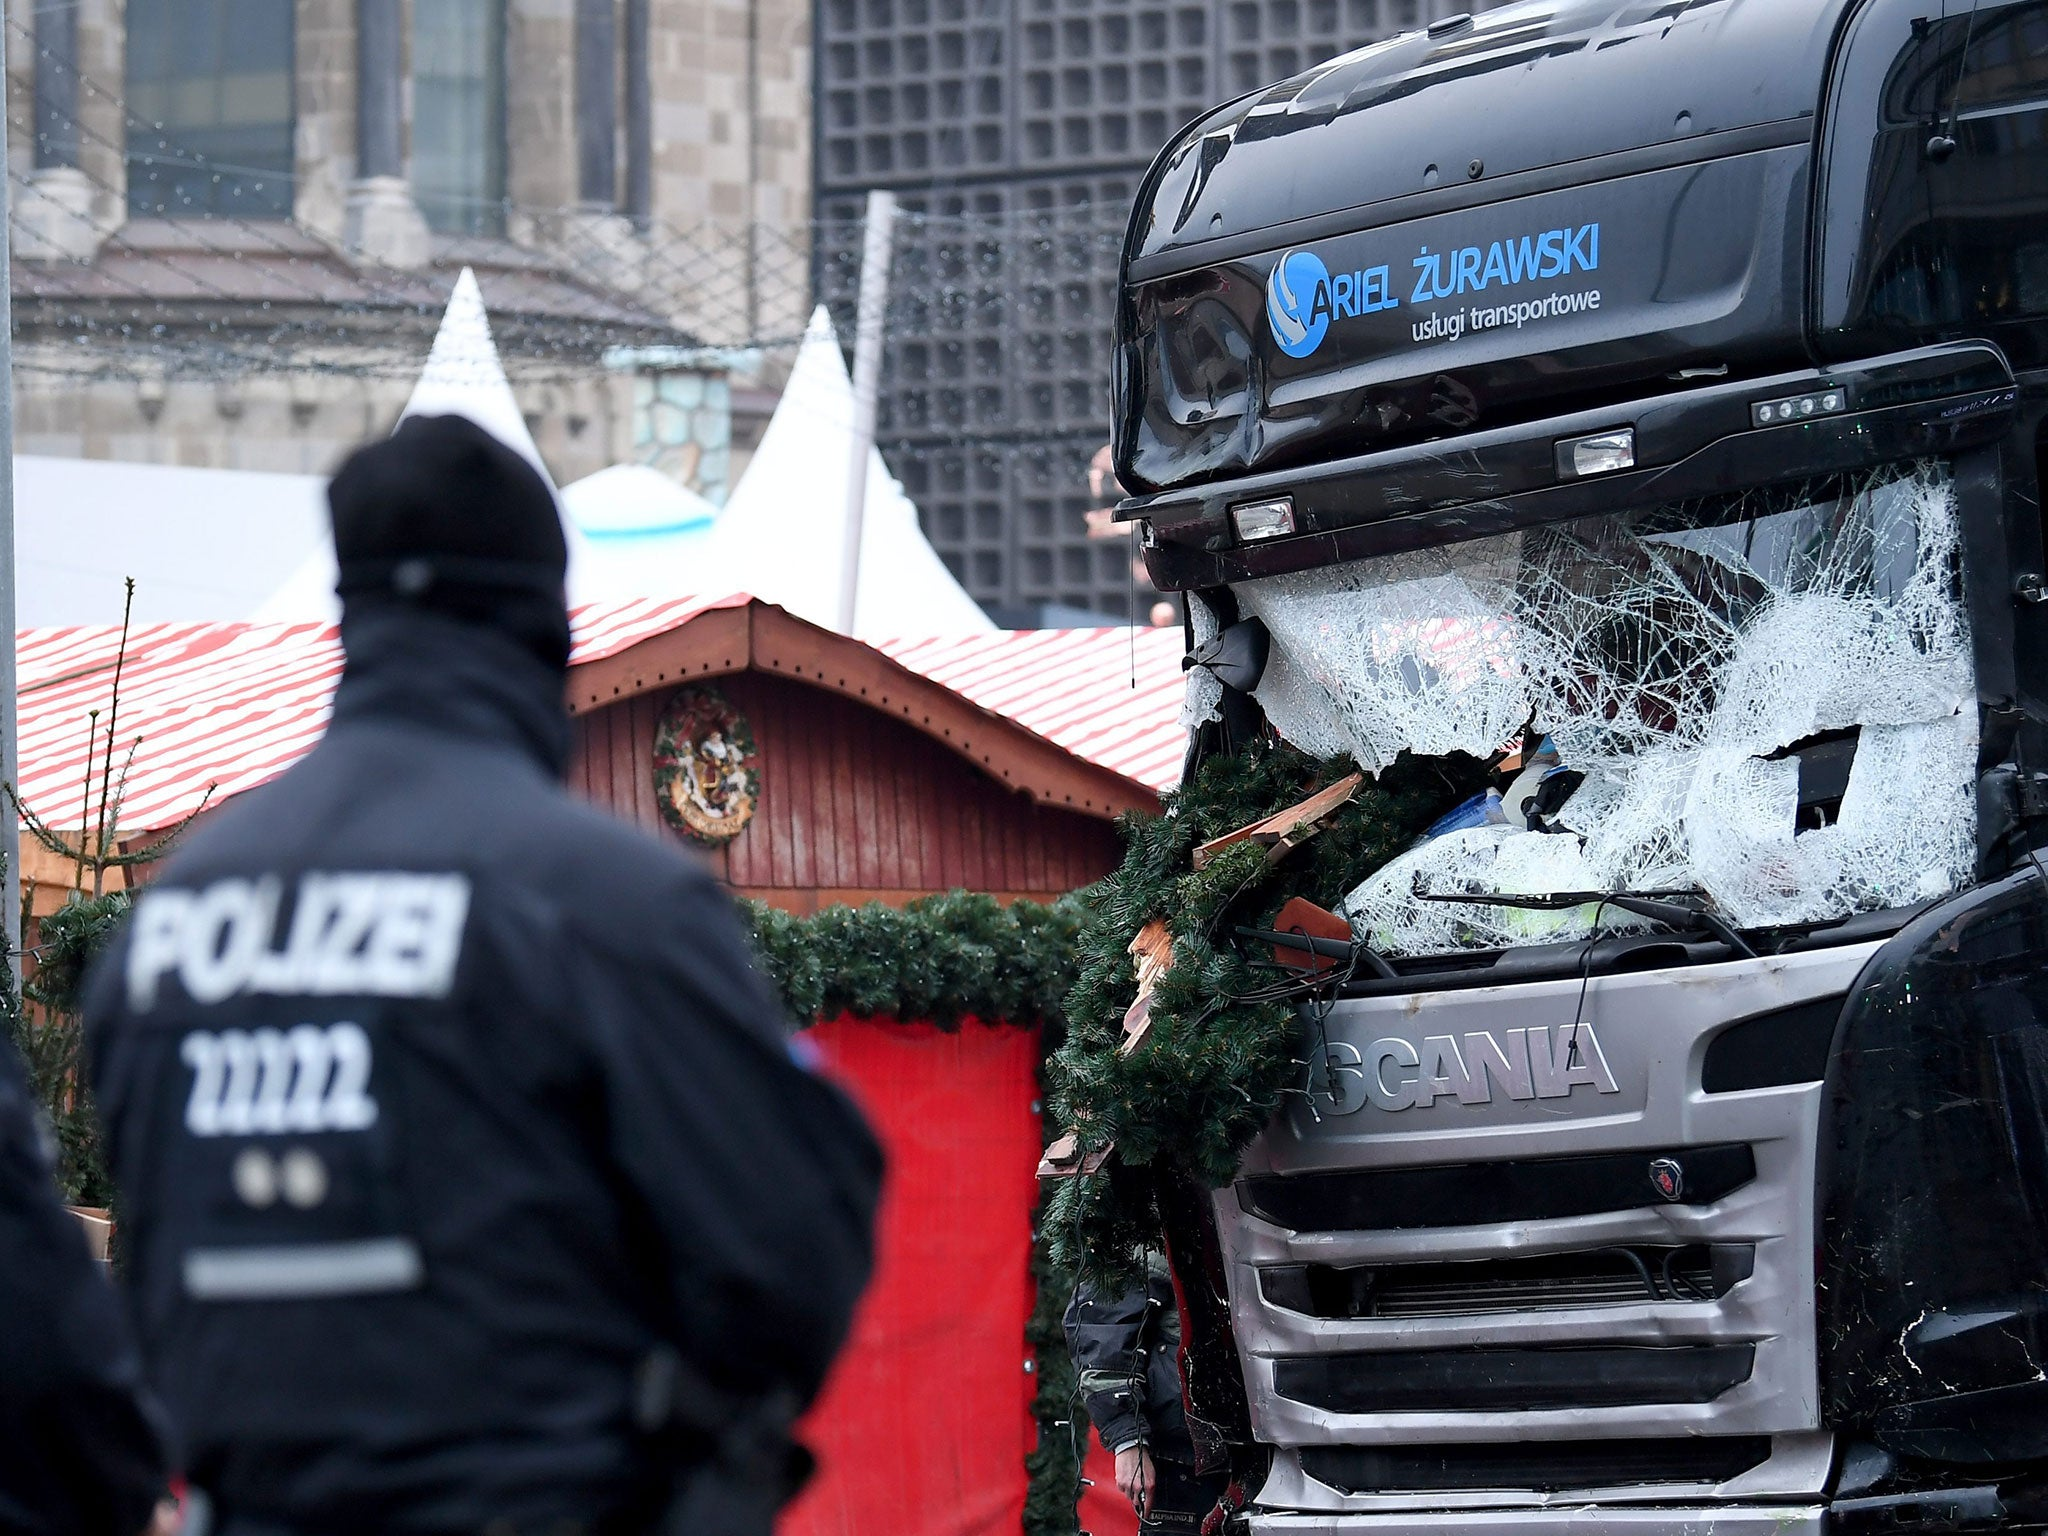 Berlin Attack Lorry 39 S Automatic Braking System Stopped